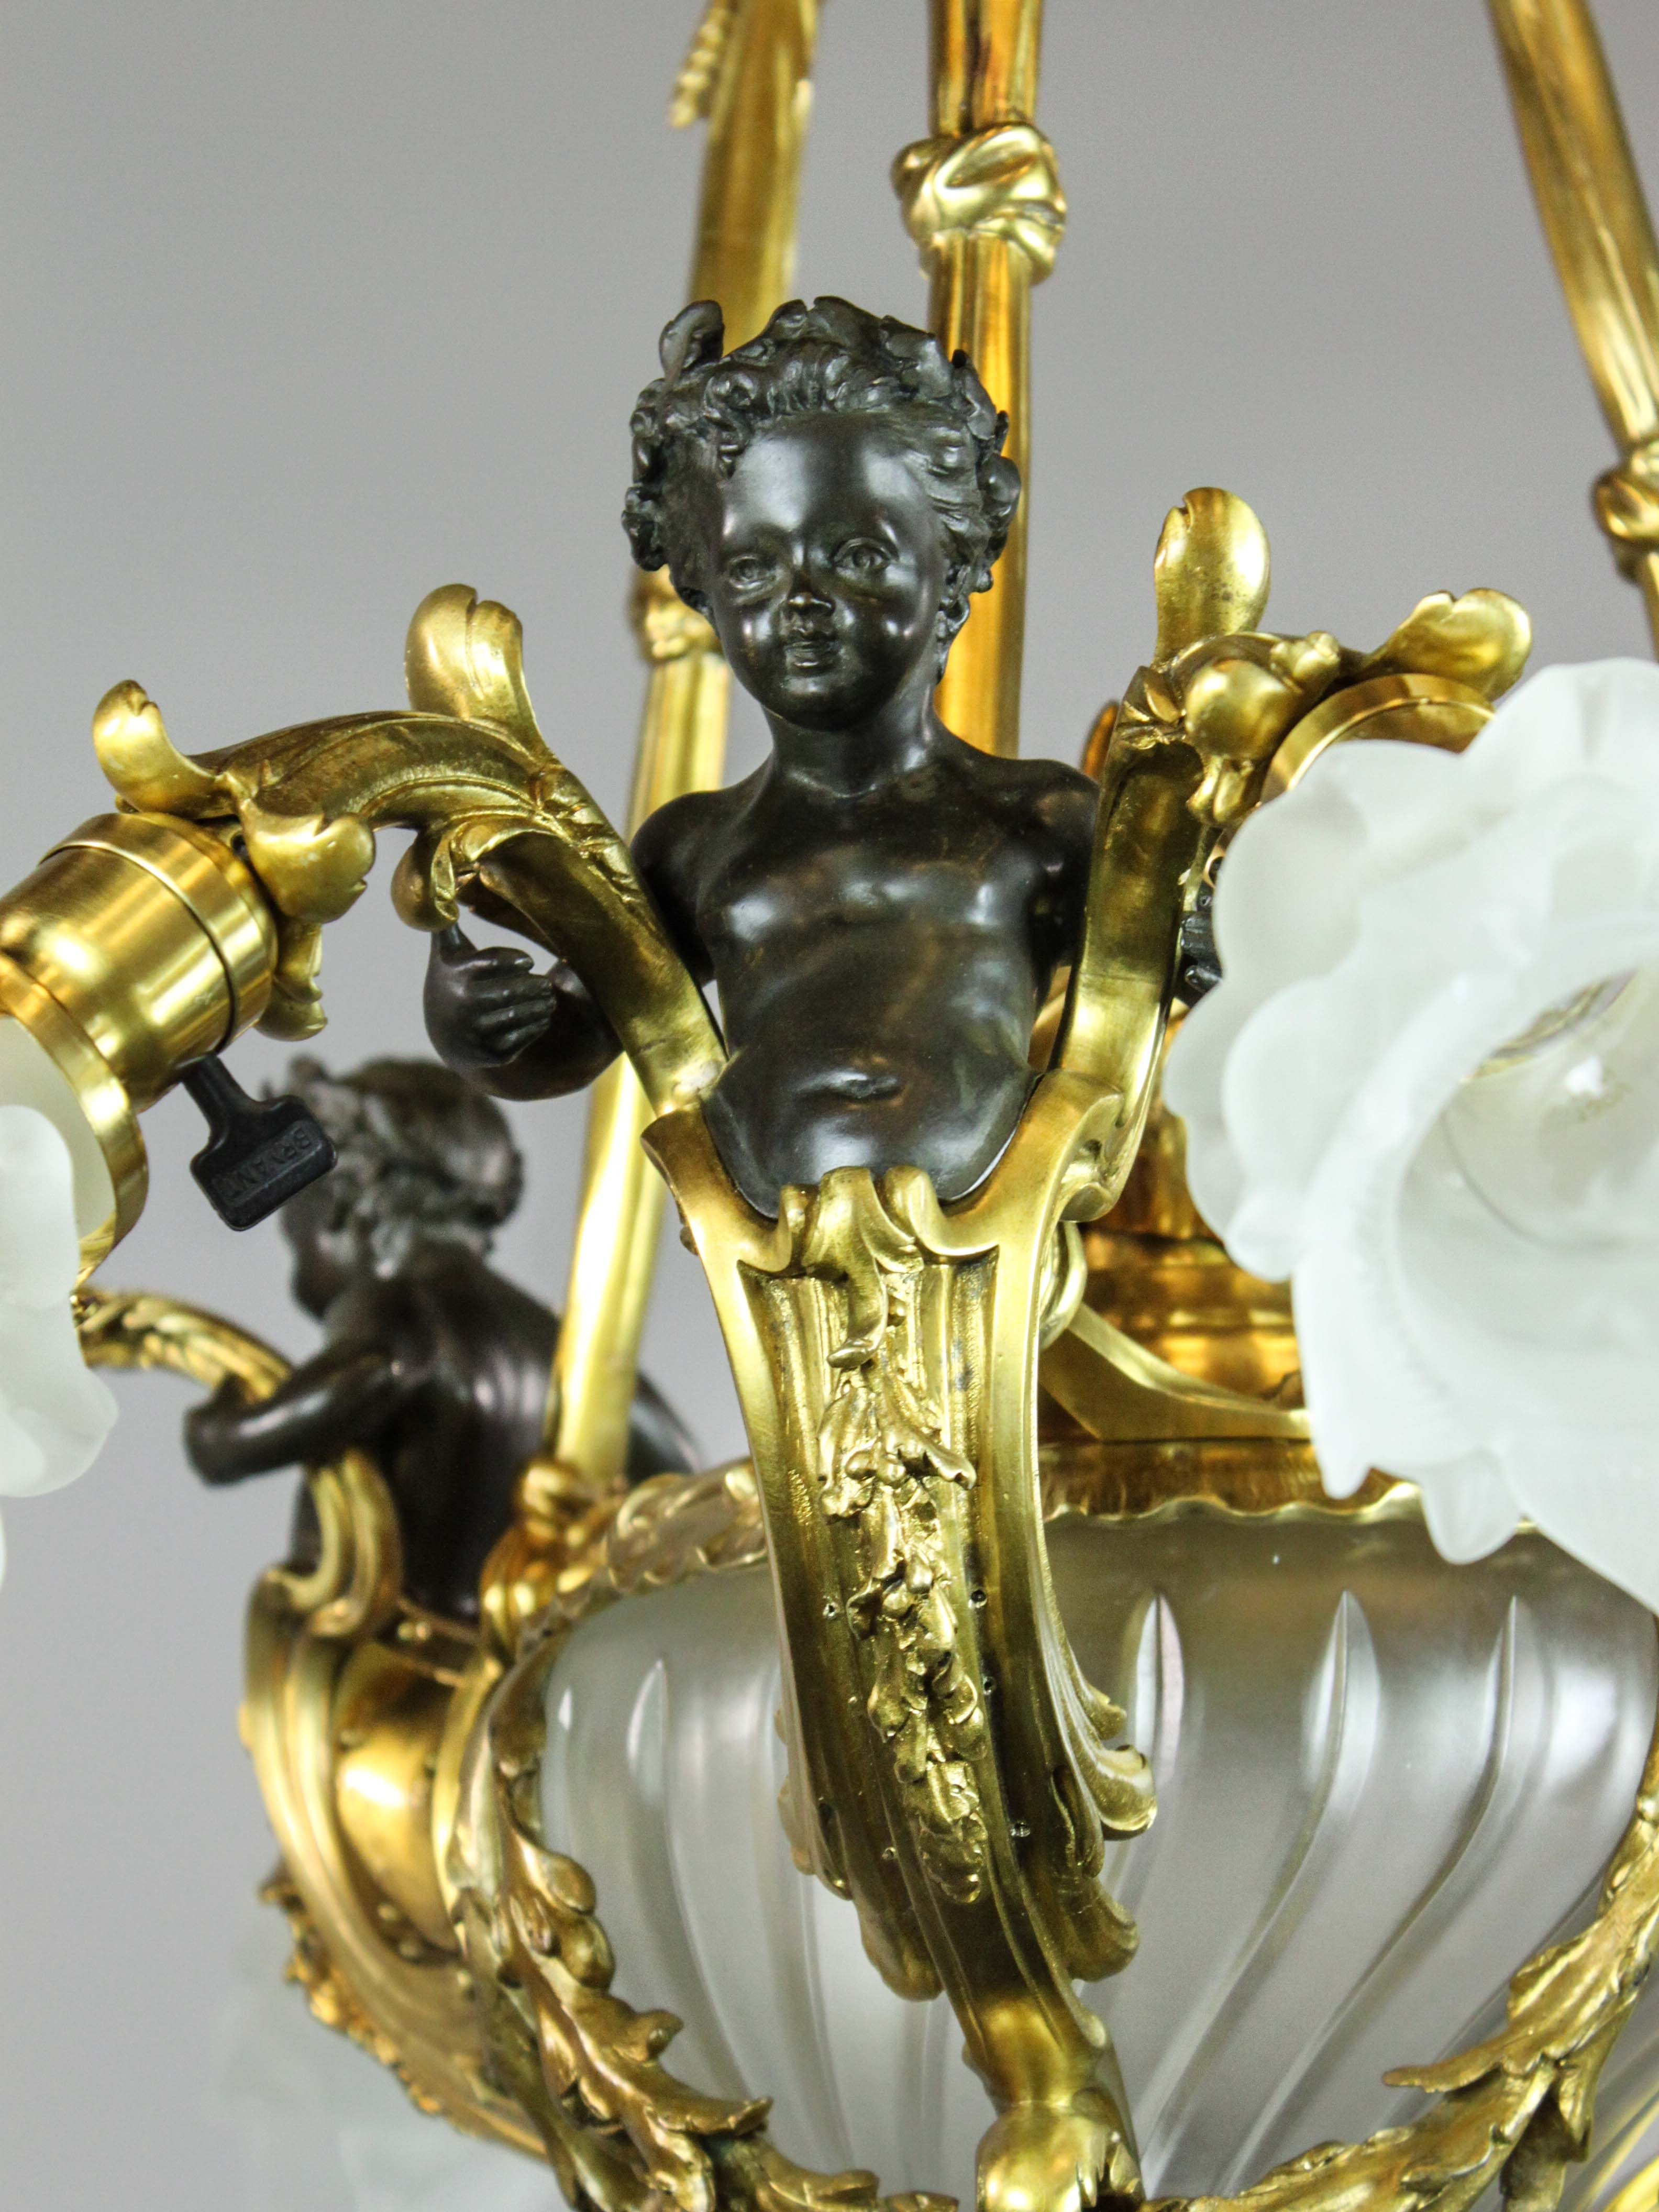 14 photos french gold chandelier chandelier ideas french cherub rococo figural chandelier 7 light pertaining to french gold chandelier image 5 of arubaitofo Choice Image